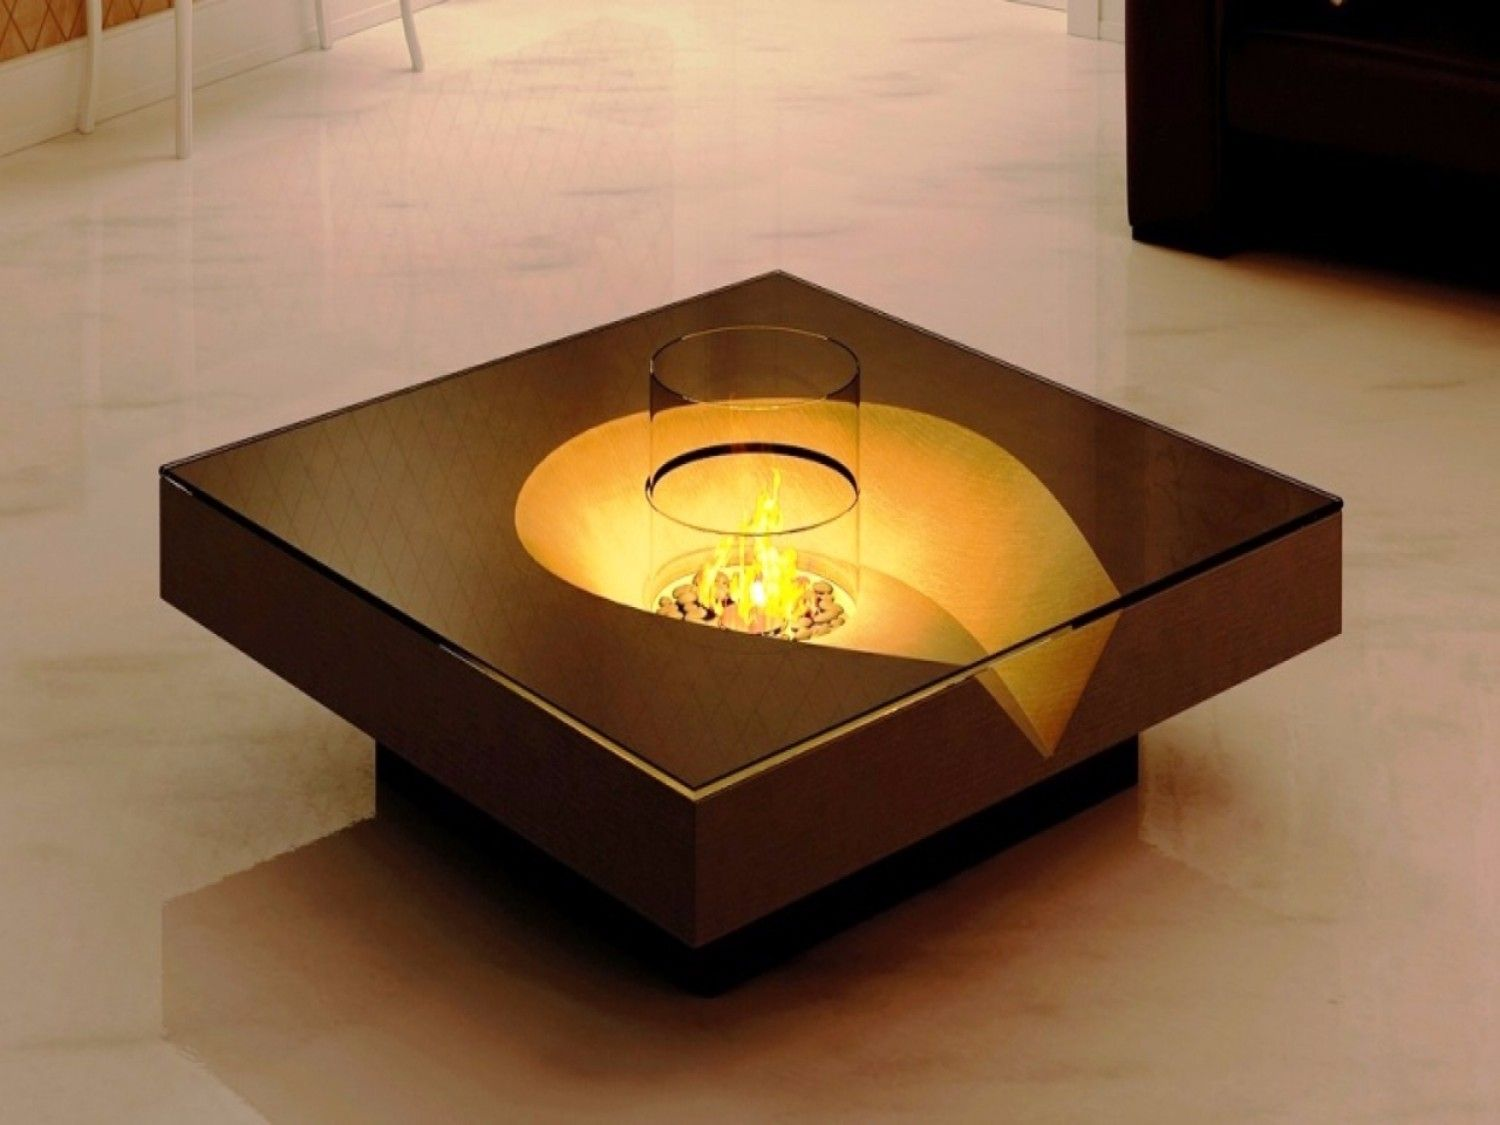 Pickrell Modern Coffee Table With Storage Modern Coffee Tables Living Room Decor Fireplace Coffee Table With Storage [ 800 x 1199 Pixel ]